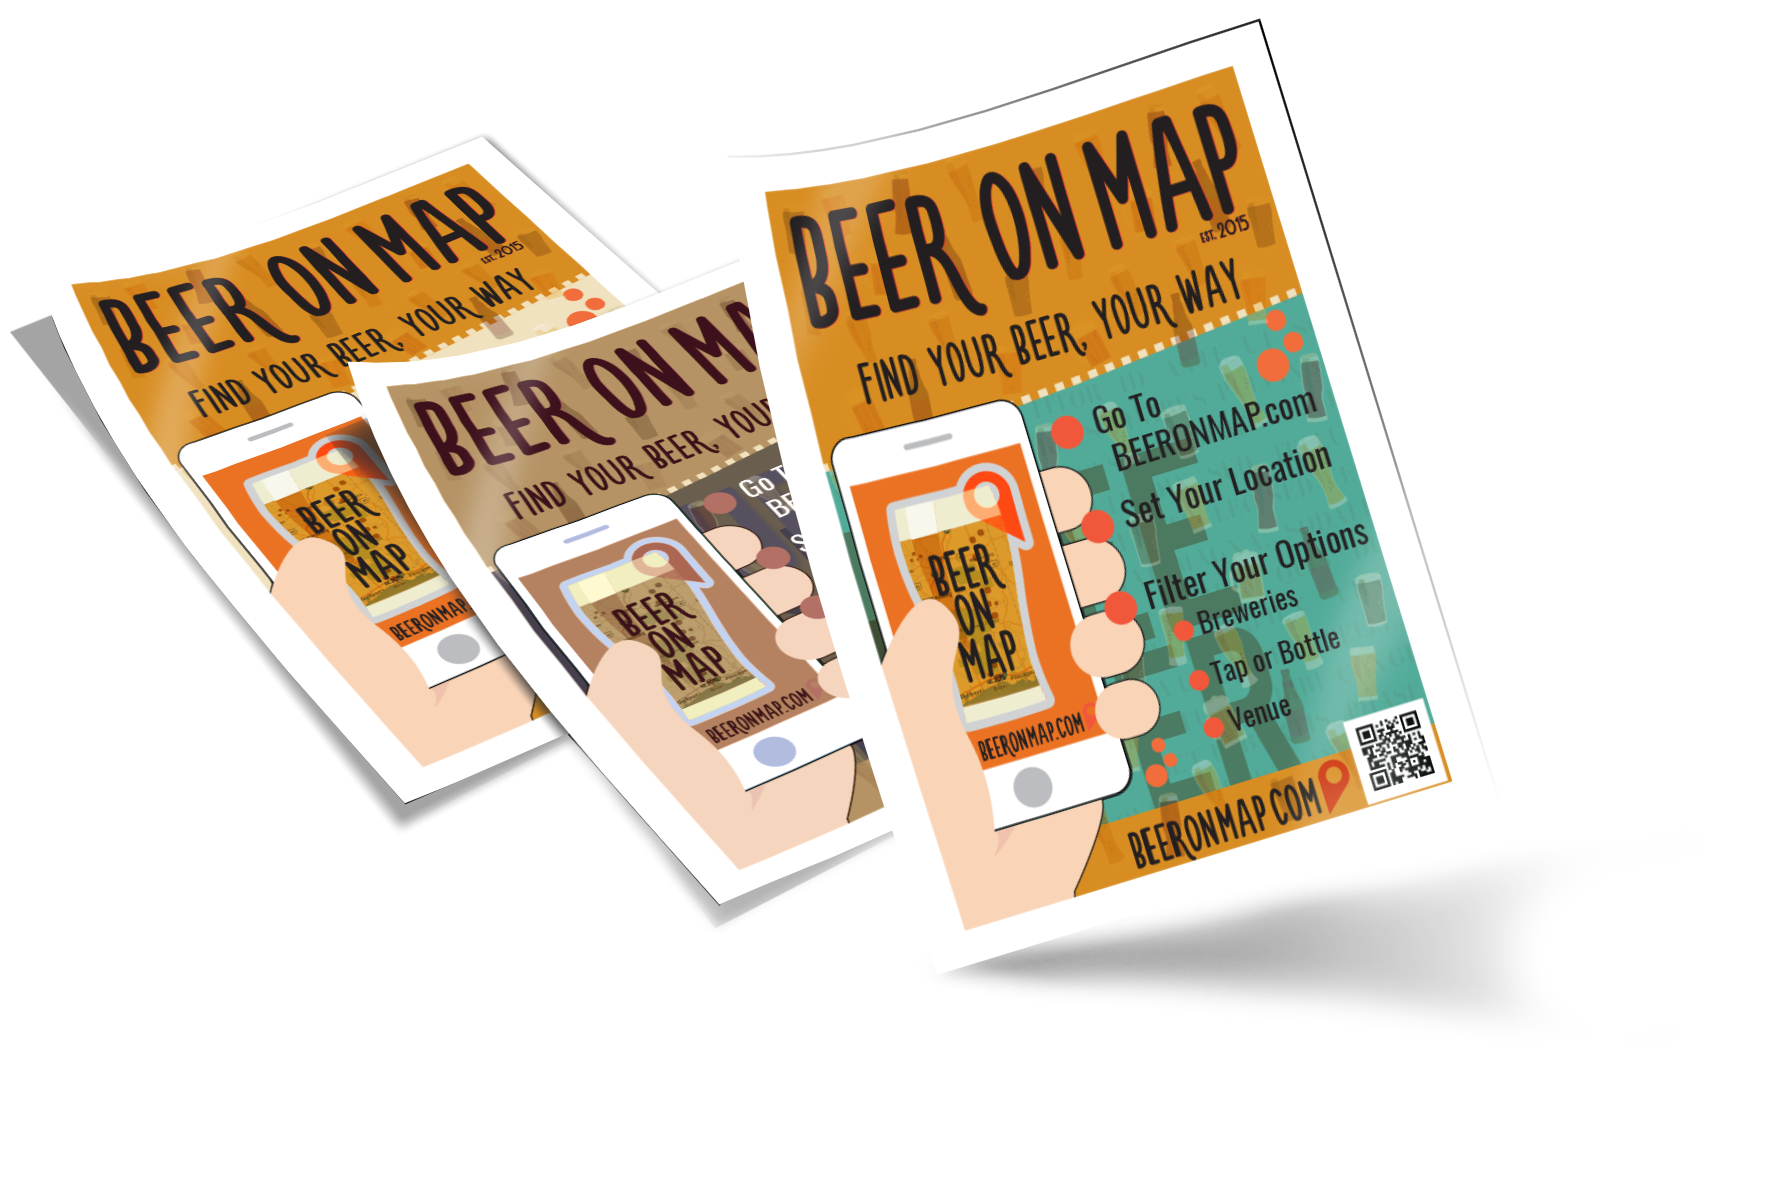 Beer on Map flier design